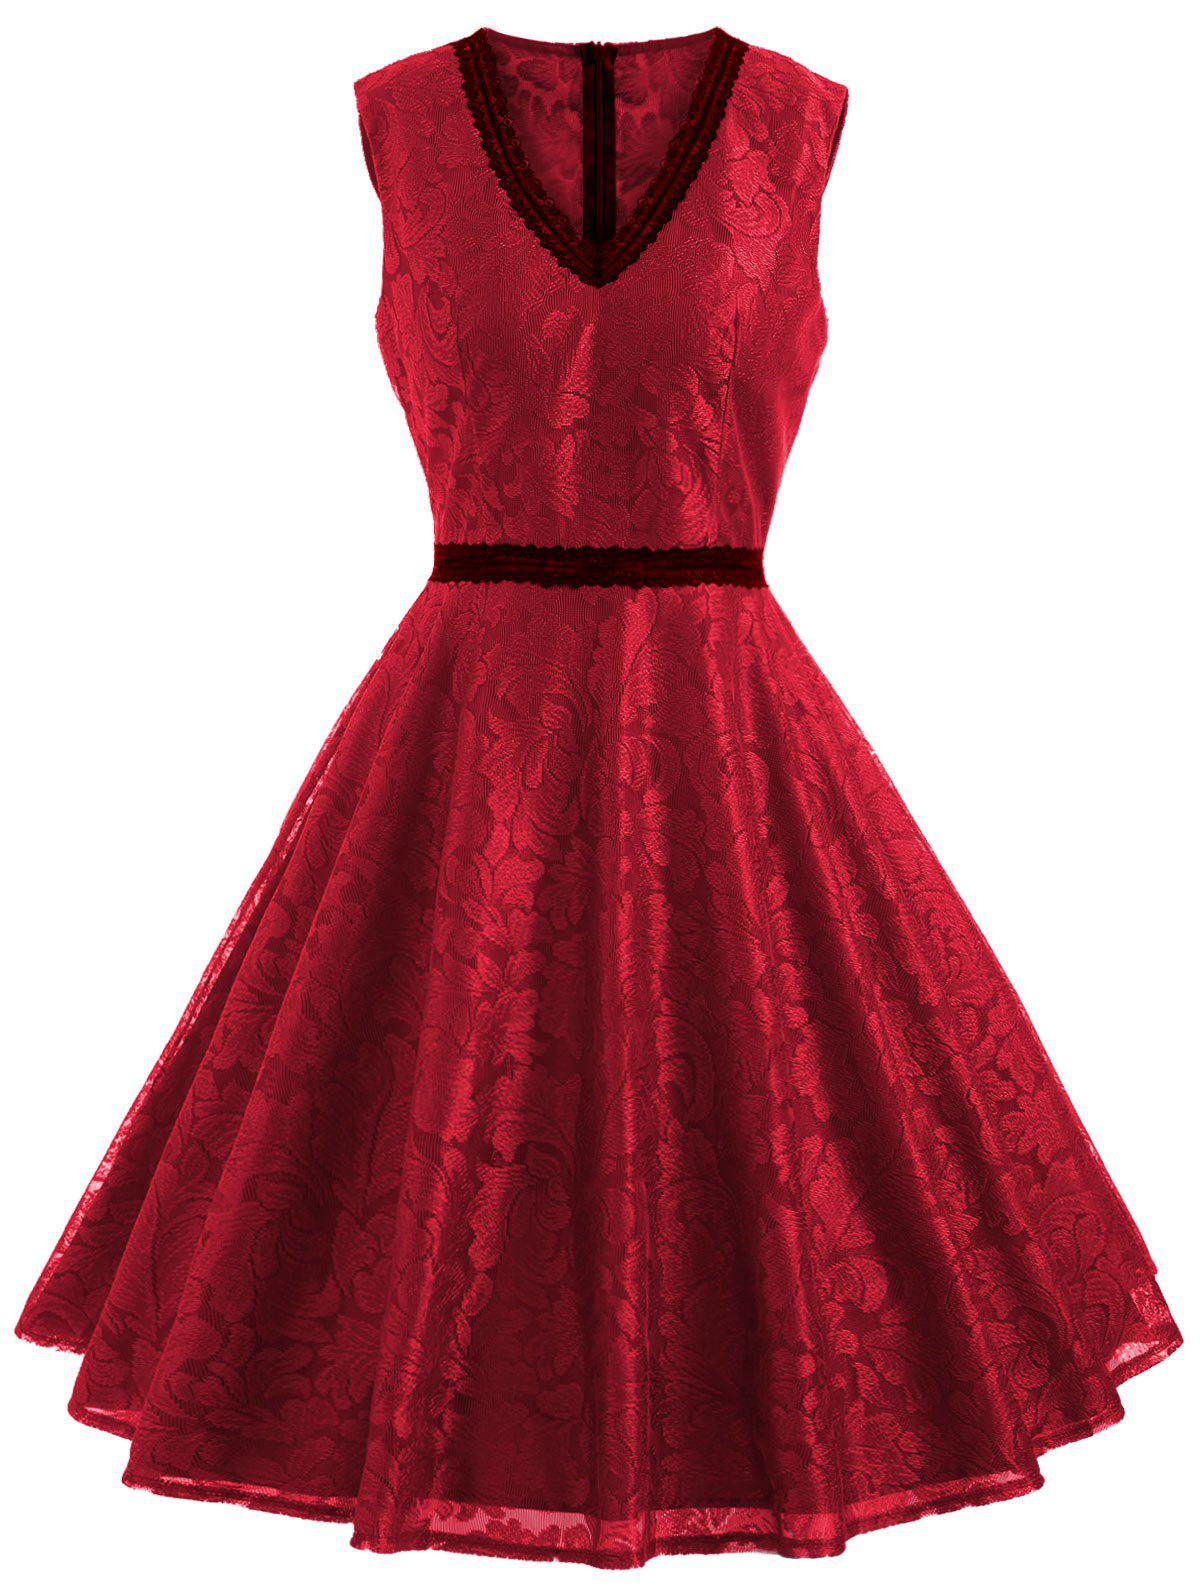 Sleeveless Leaf Lace Dress - RED M